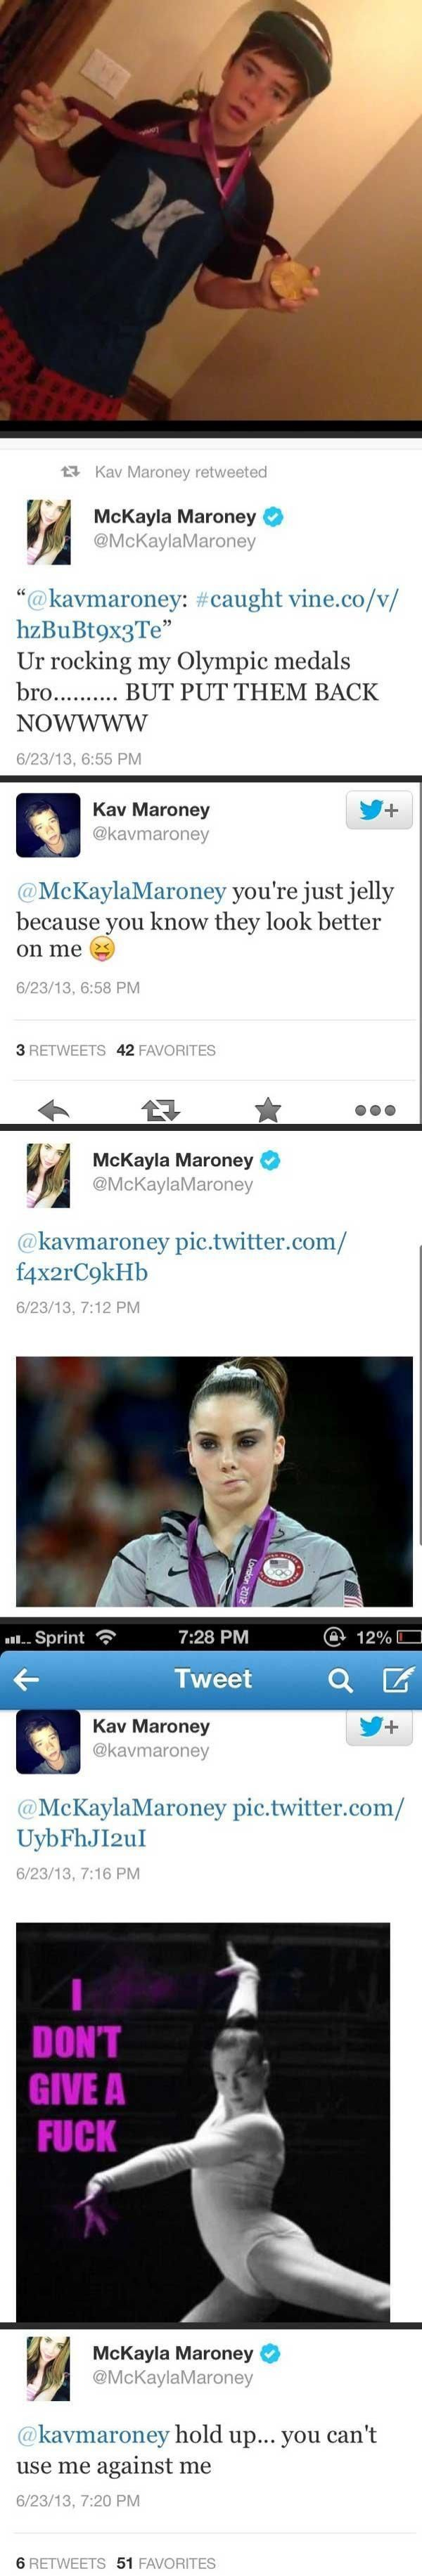 McKayla Maroney vs Her Brother (6 pics)